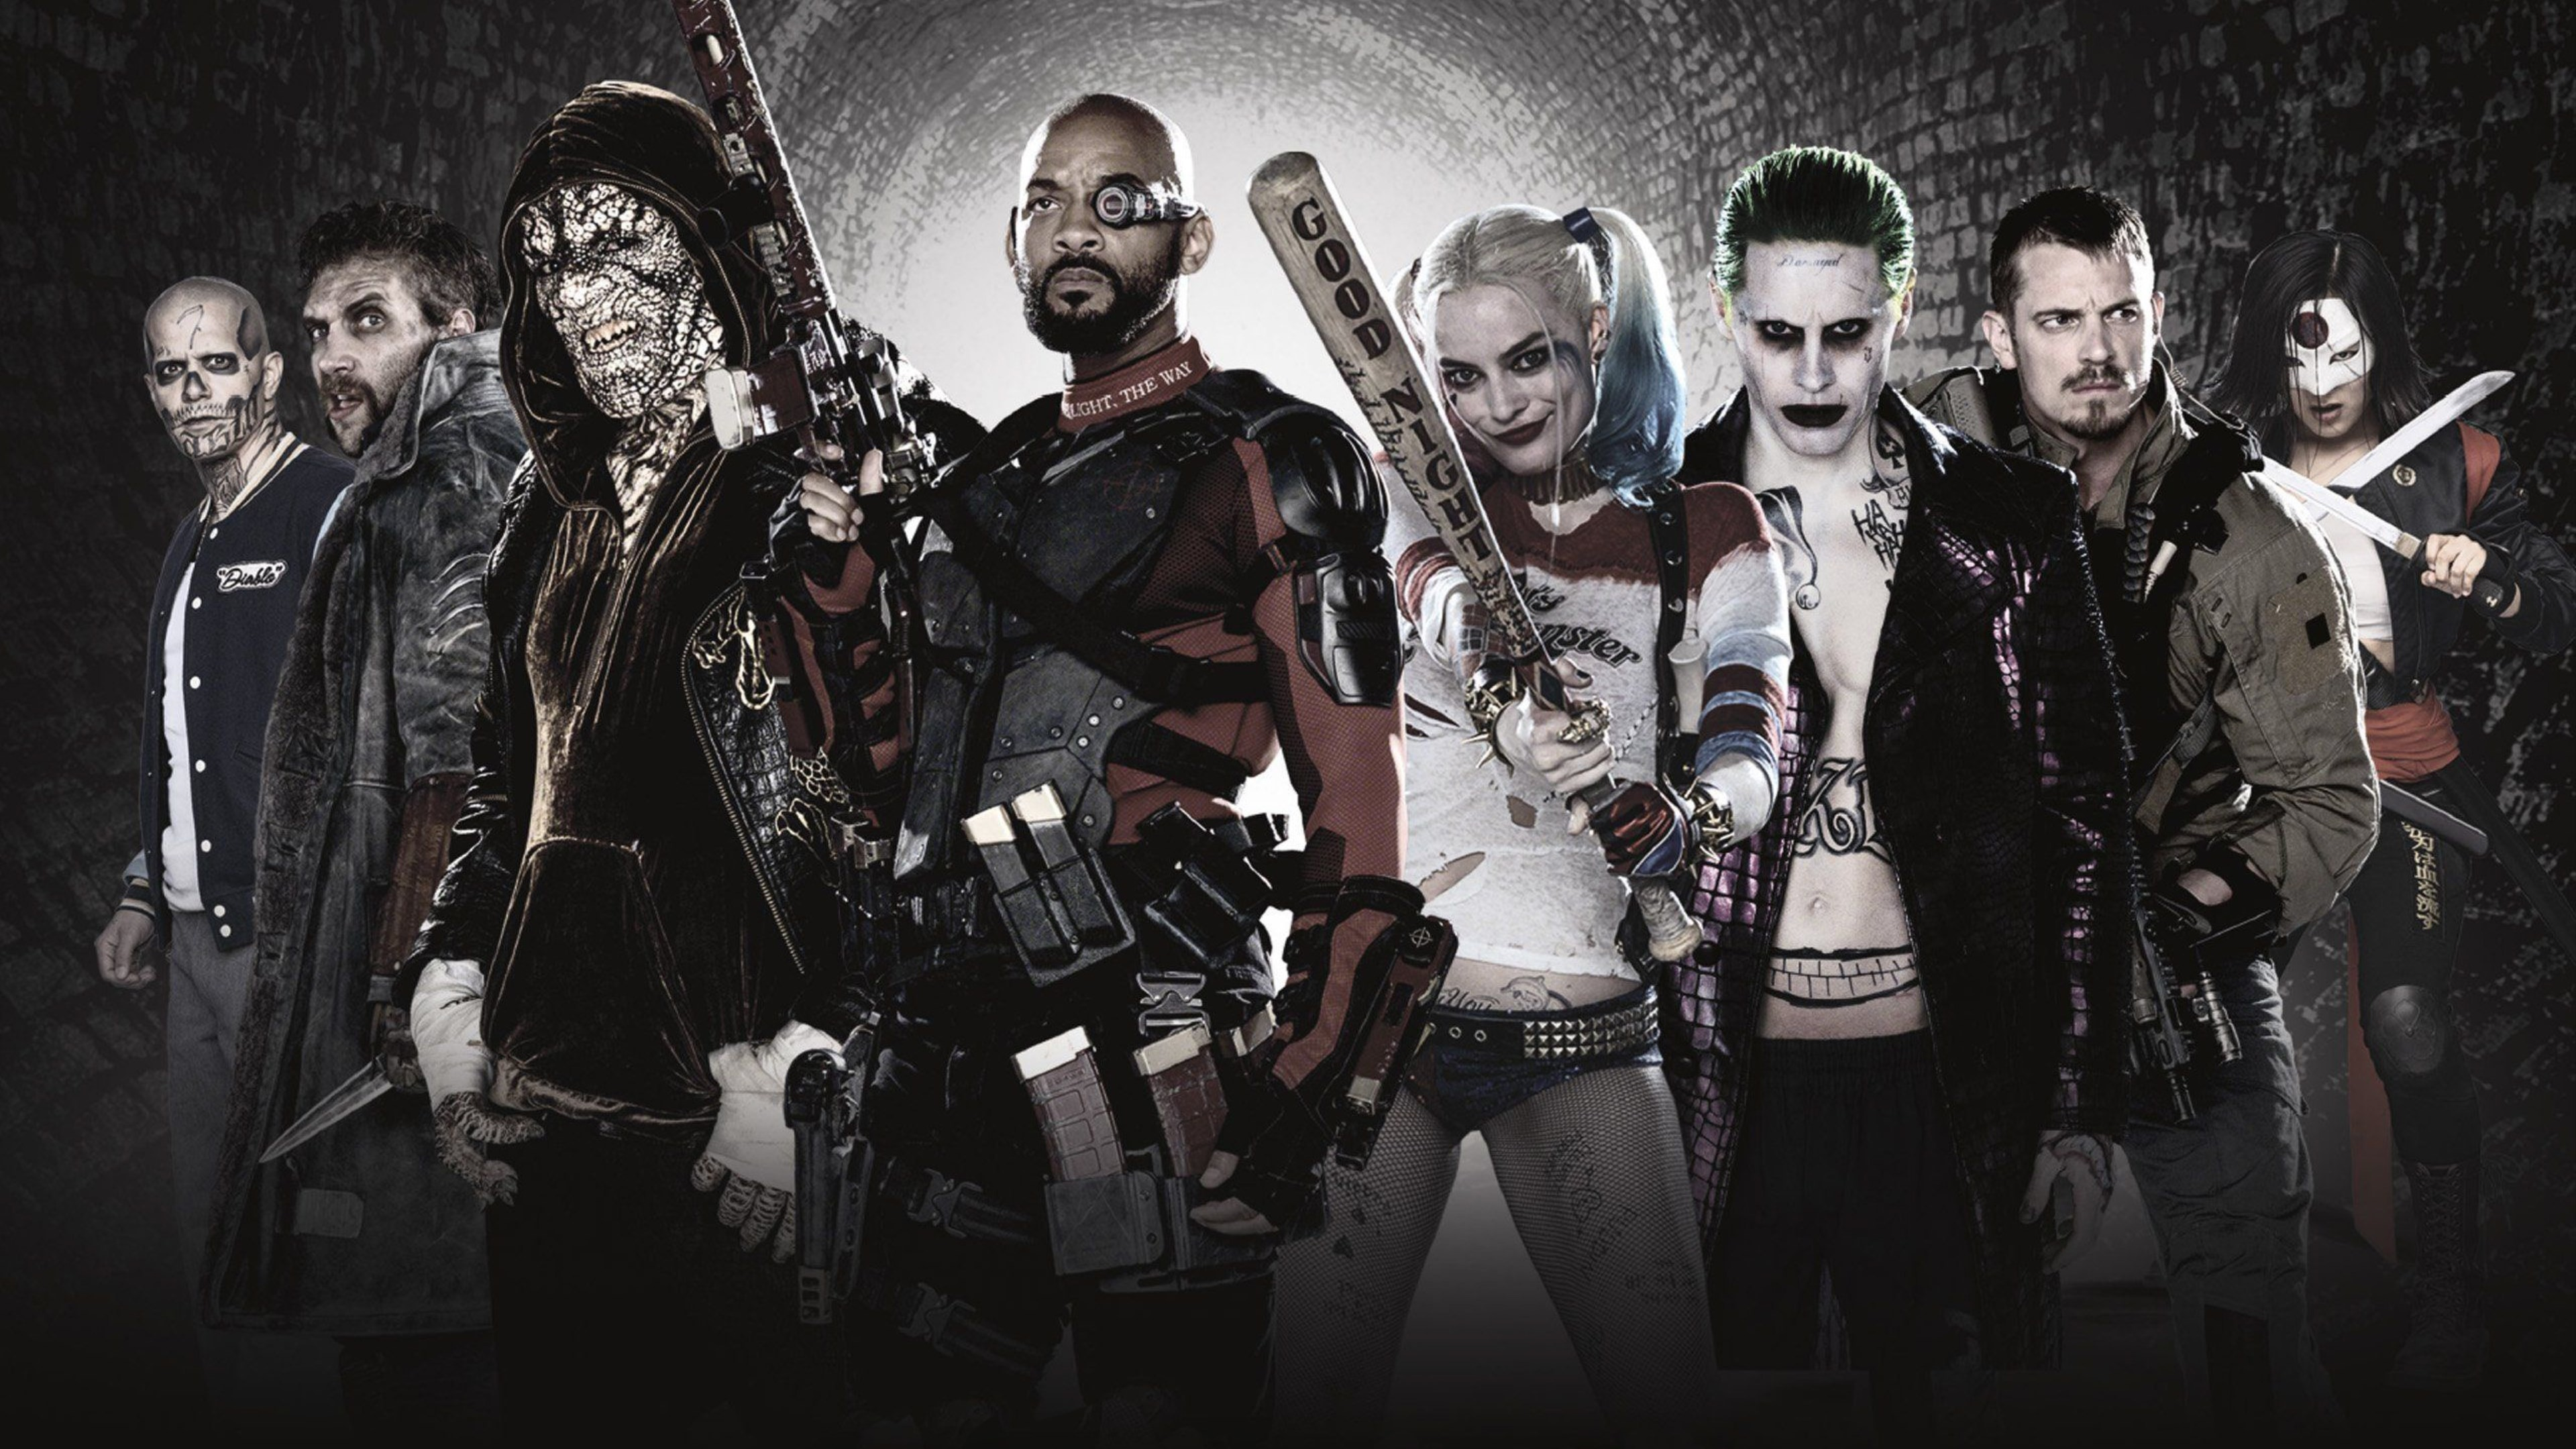 3840x2160 Suicide Squad New Poster Wallpaper | Movies HD Wallpapers - Visit to grab  an amazing super